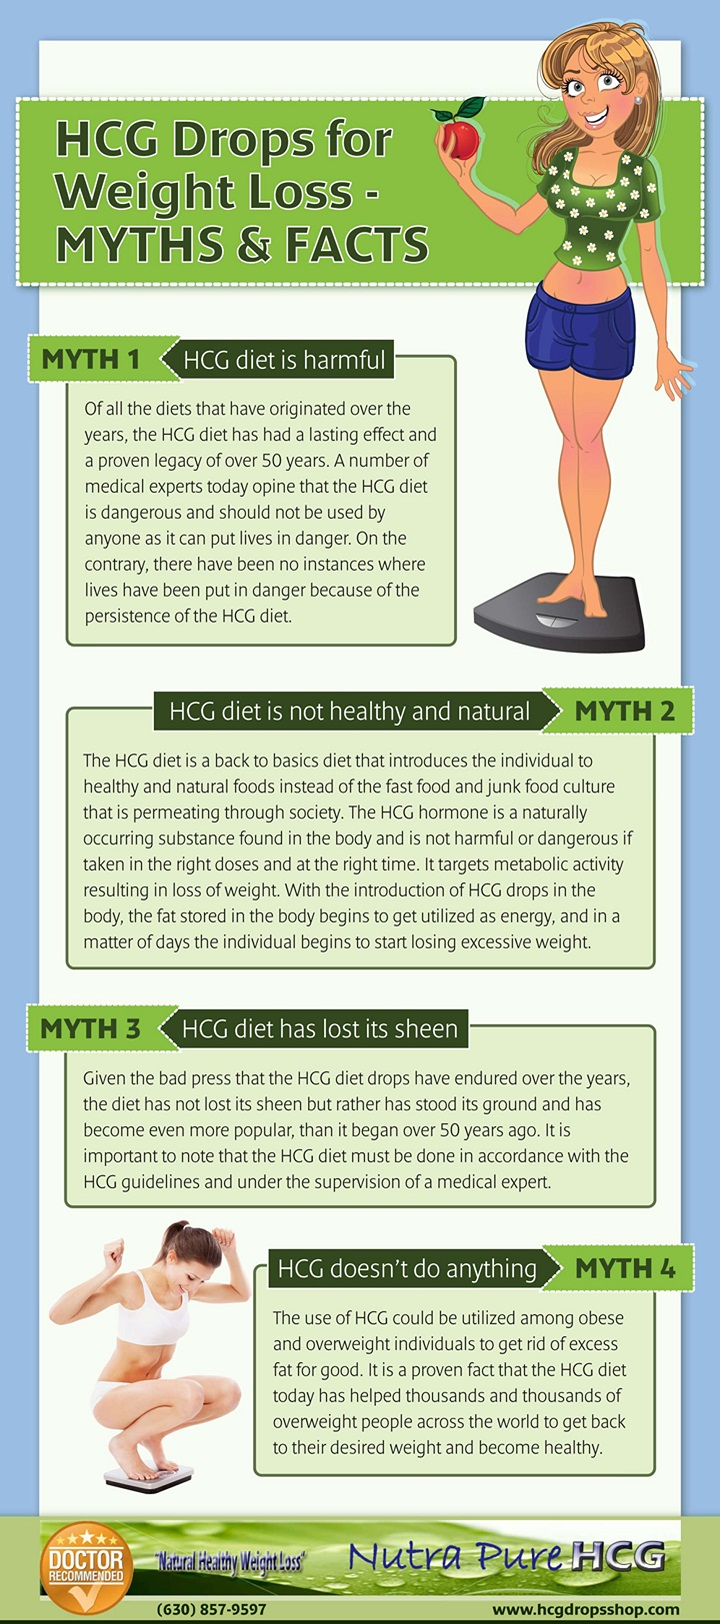 HCG Drops for Weight Loss myths - Nutra